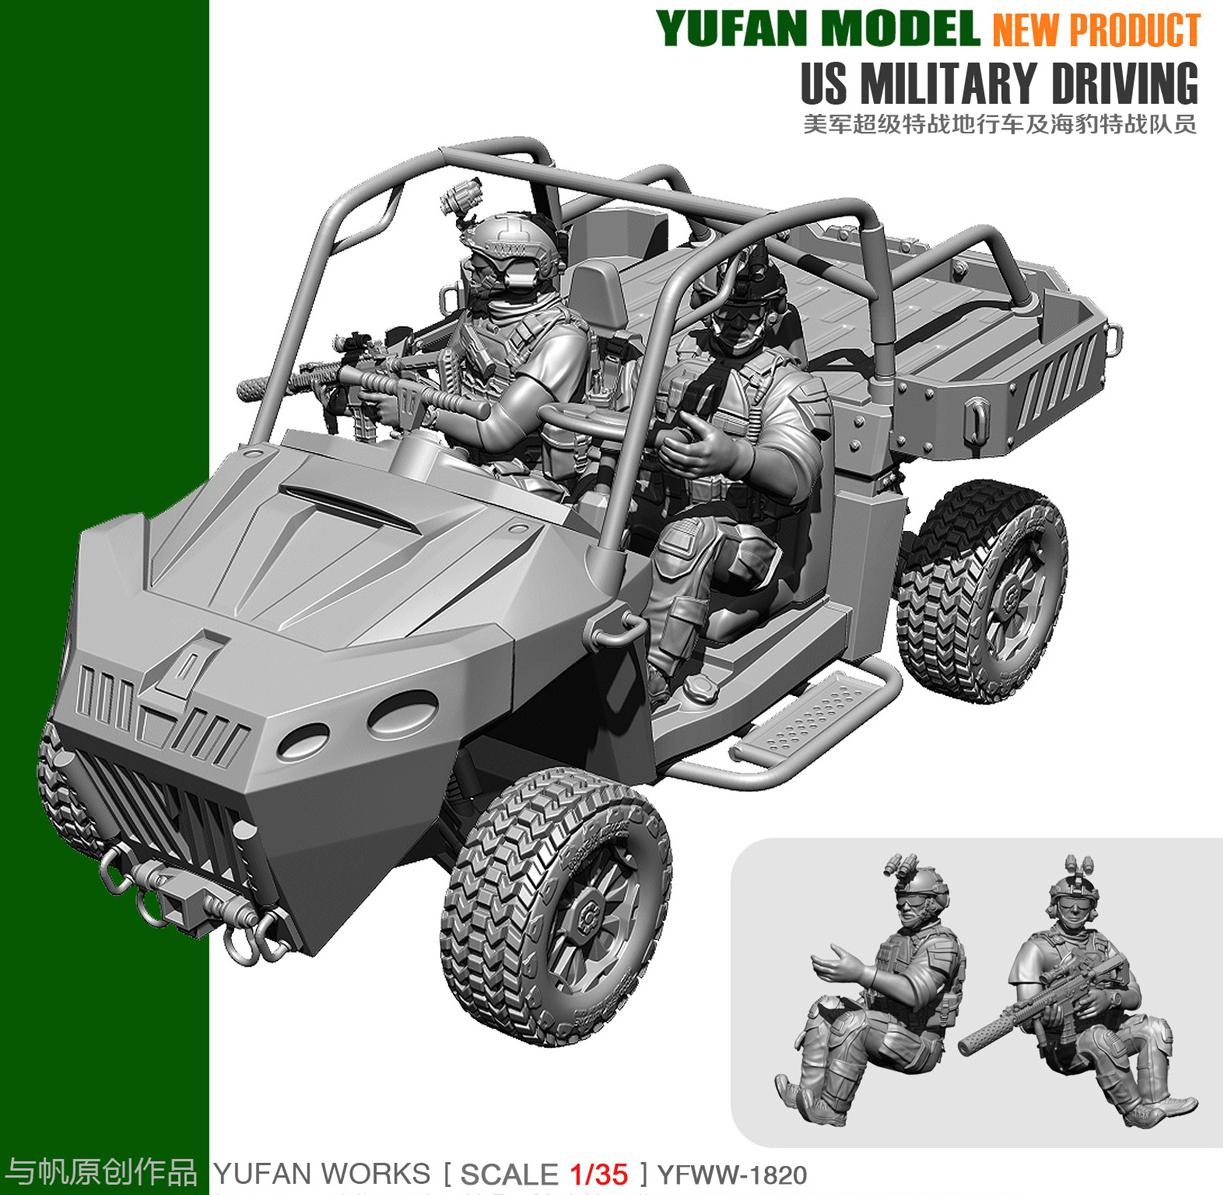 Yufan Model 1/35 Model Kit Us Terrain Vehicle And Driver YFWW35-1820